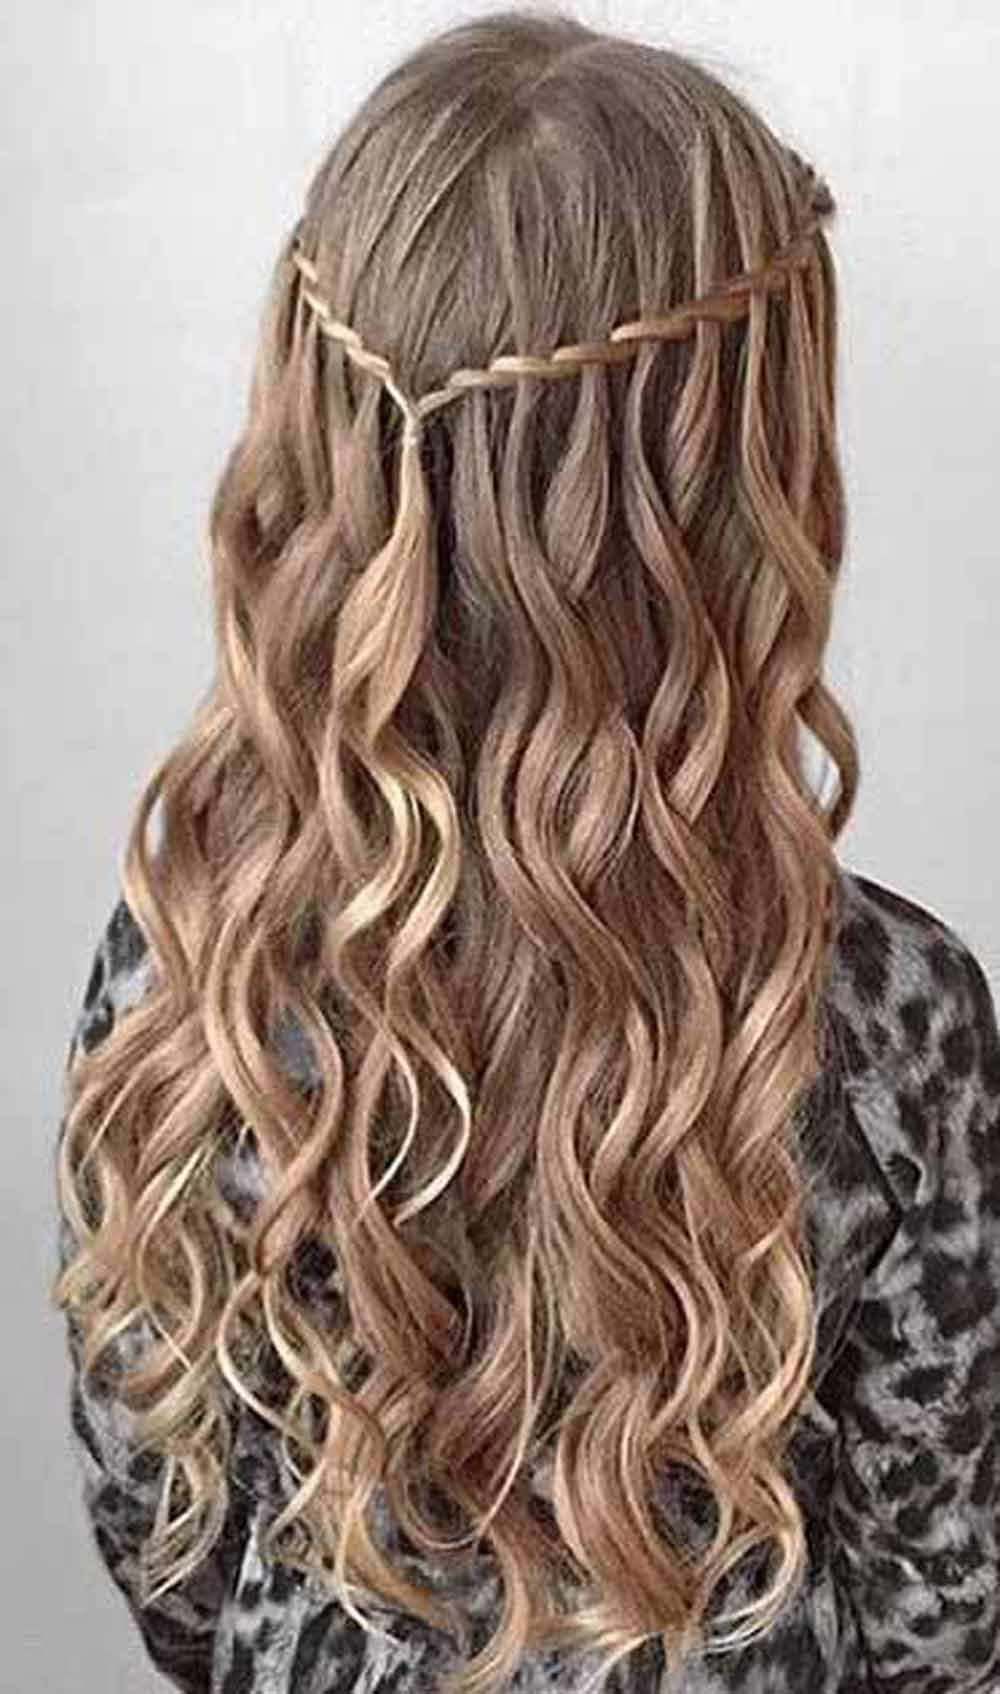 Curly Hairstyles In Your 40 S Curly Hairstyles To Look Younger Wedding Hairstyles With Curly Hair Curly Hair Hai In 2020 Hair Styles Grad Hairstyles Long Wavy Hair